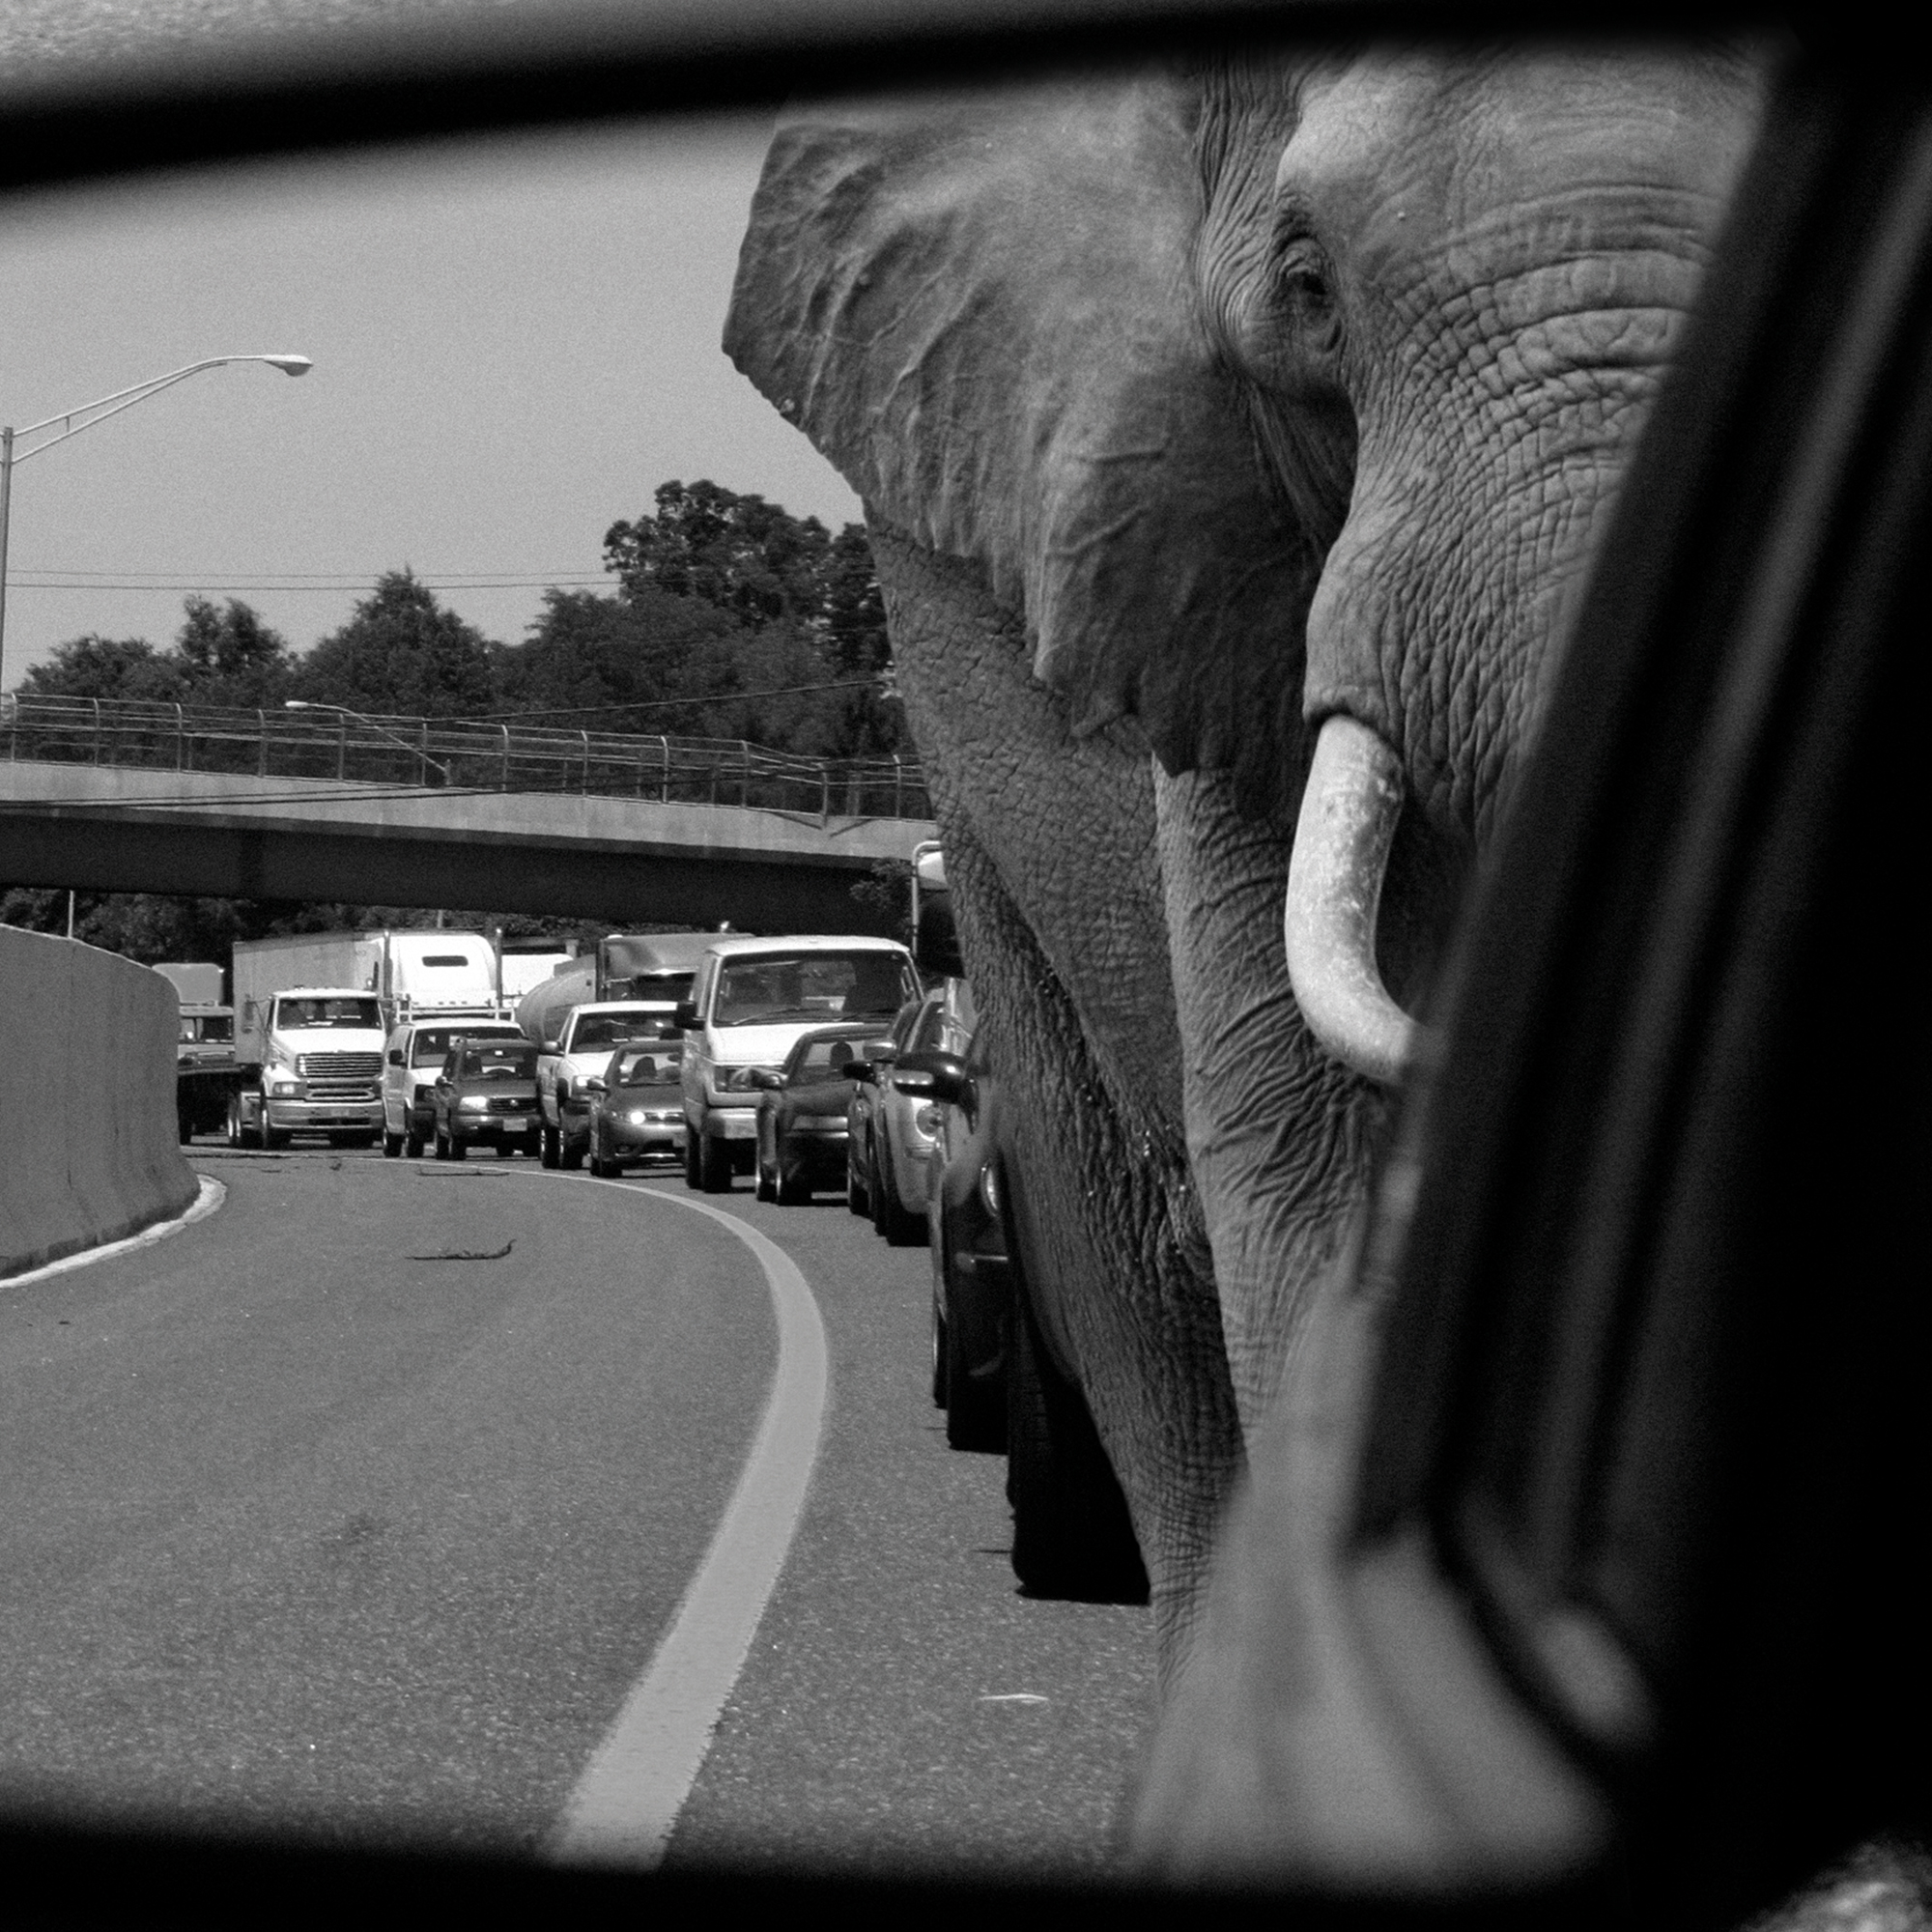 Close-up of a black and white photoshopped photography art print featuring an elephant stuck in a traffic jam